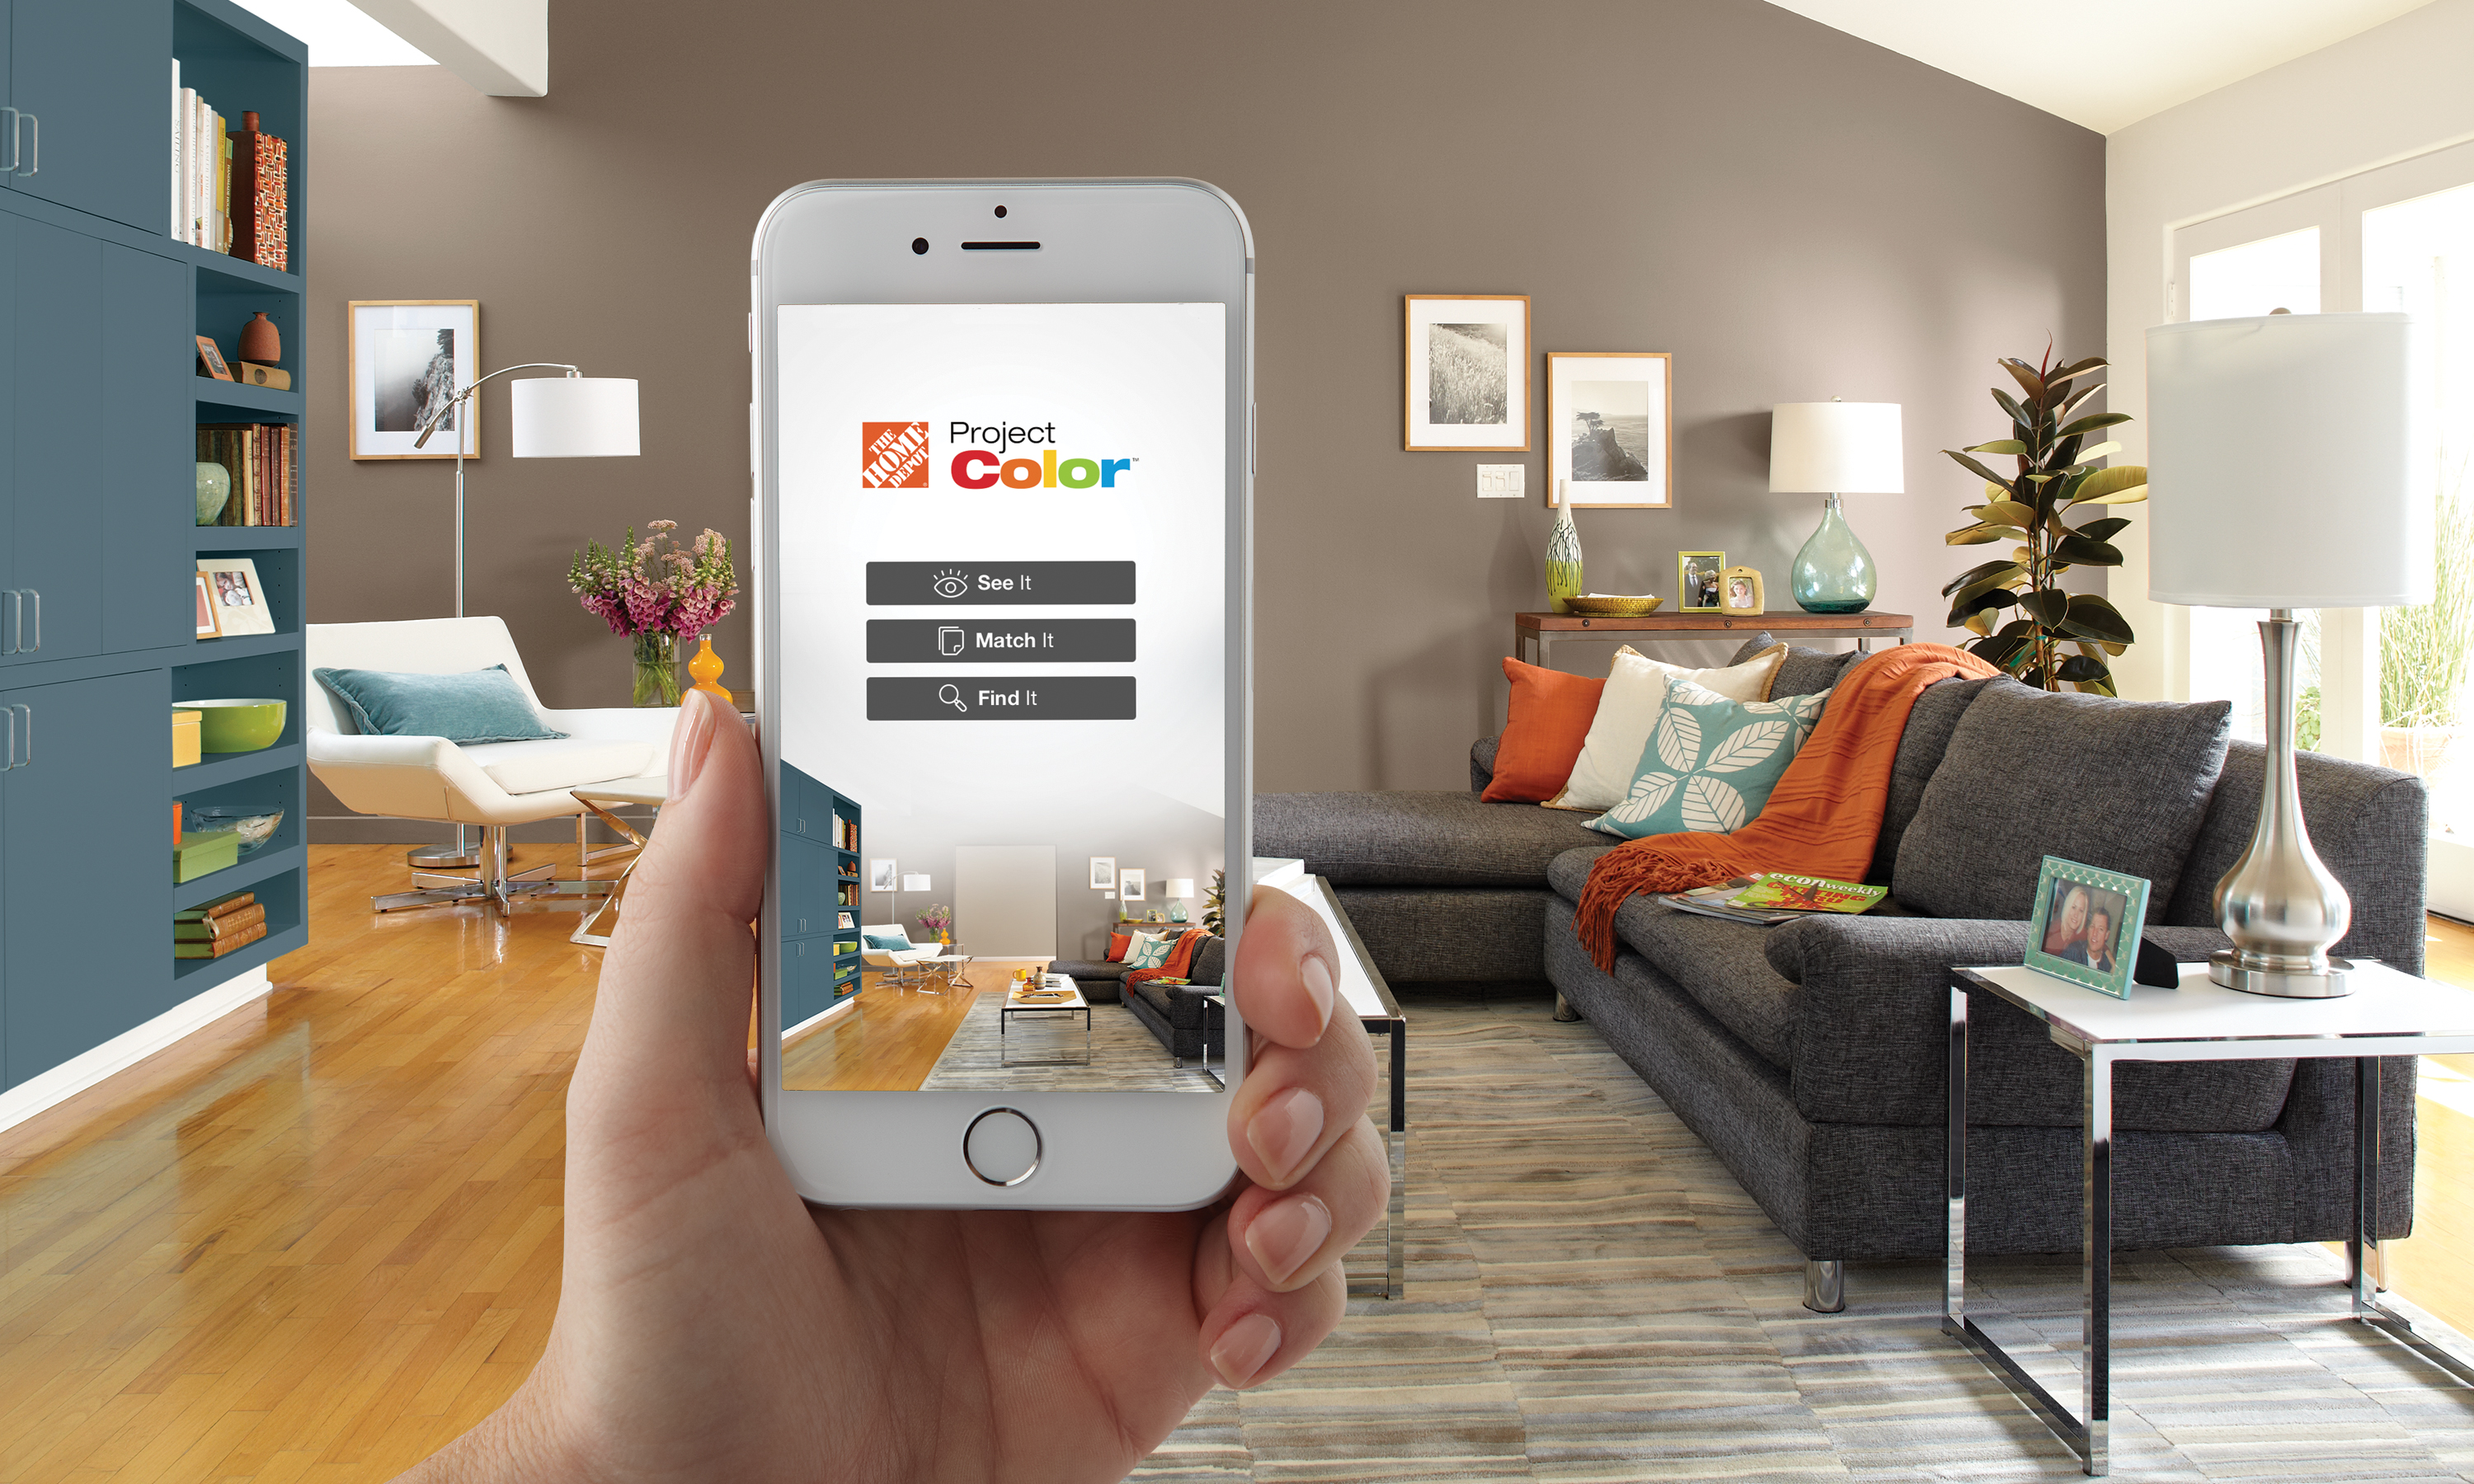 Exceptionnel The Home Depot | New Technology Shows You The Perfect Paint Color Before  Itu0027s On Your Walls